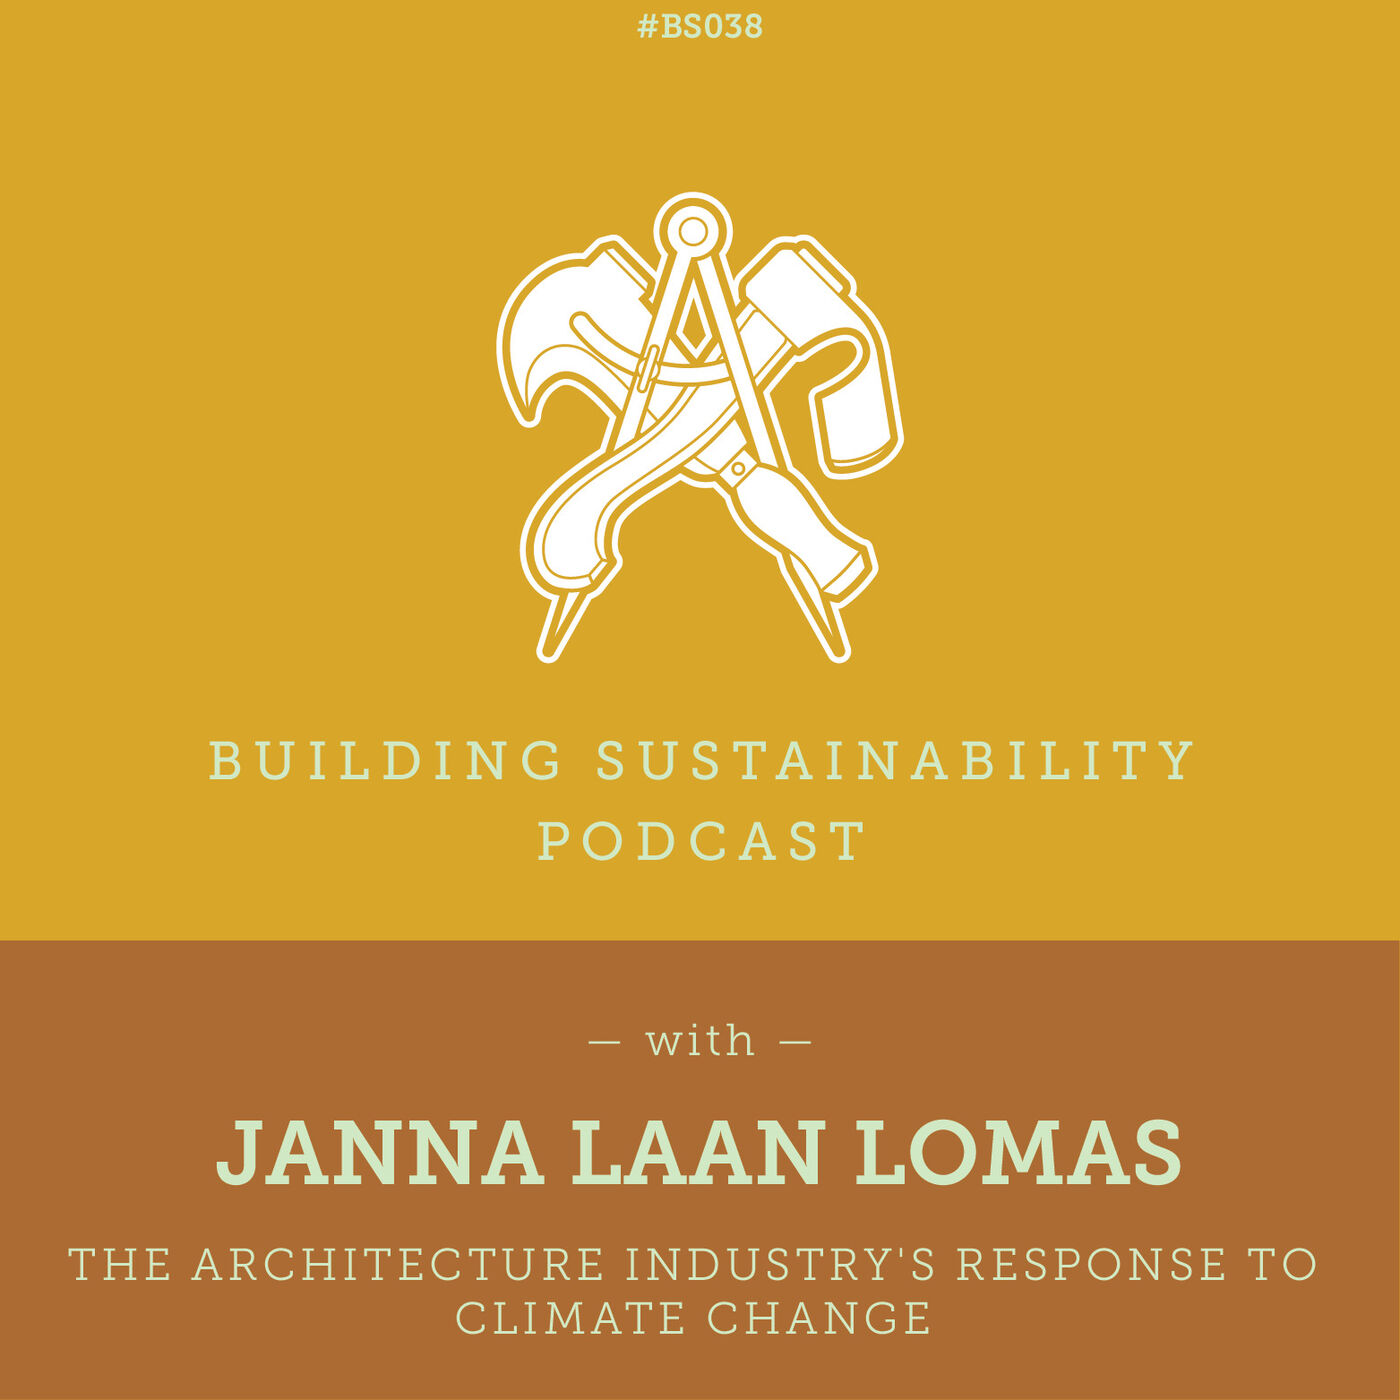 How will architects respond to climate change? - Janna Laan Lomas - BS038